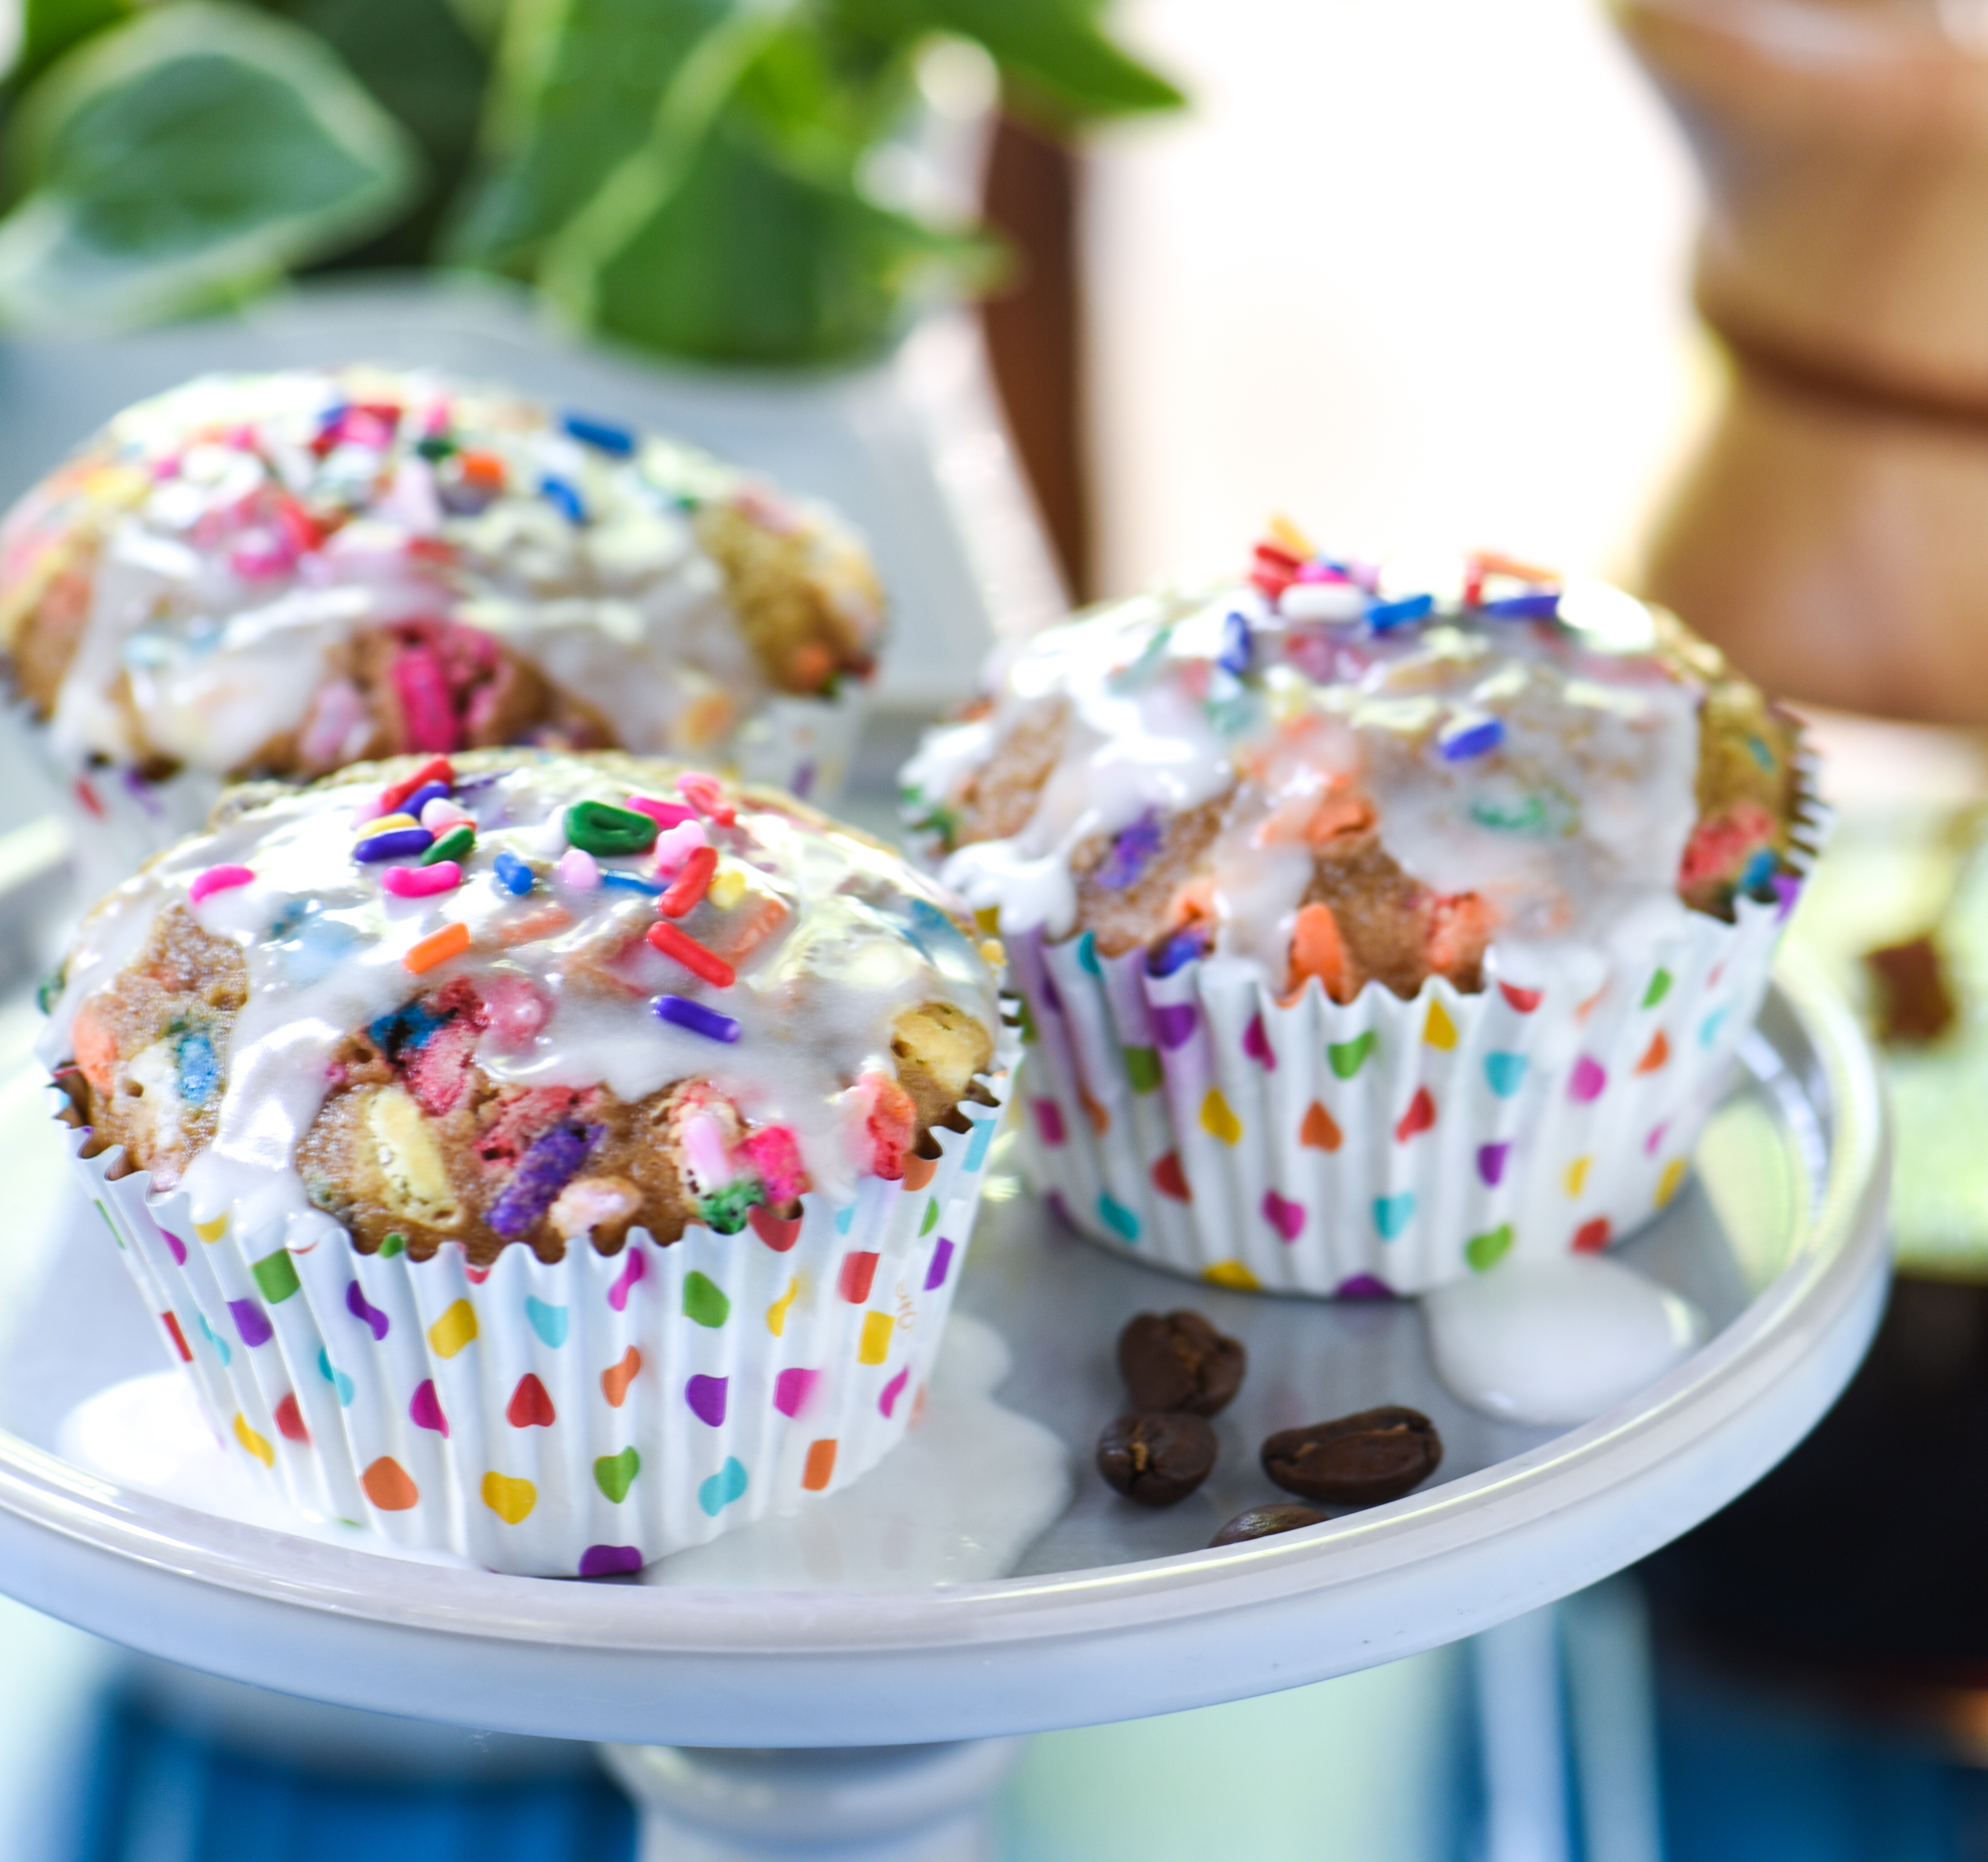 Birthday Cake Latte Muffins Turn A Fun Coffeehouse Treat Into Baked Good With These Espresso Spiked Funfetti